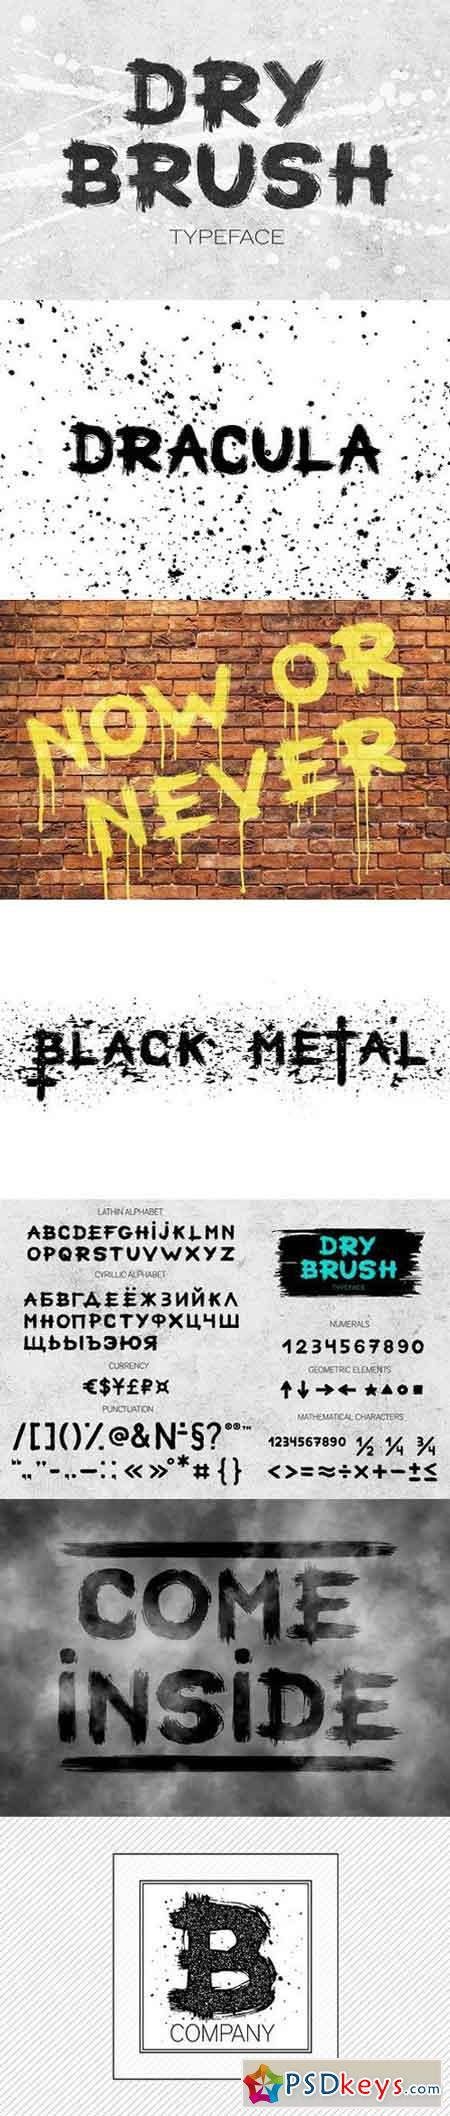 Dry brush typeface 1249663